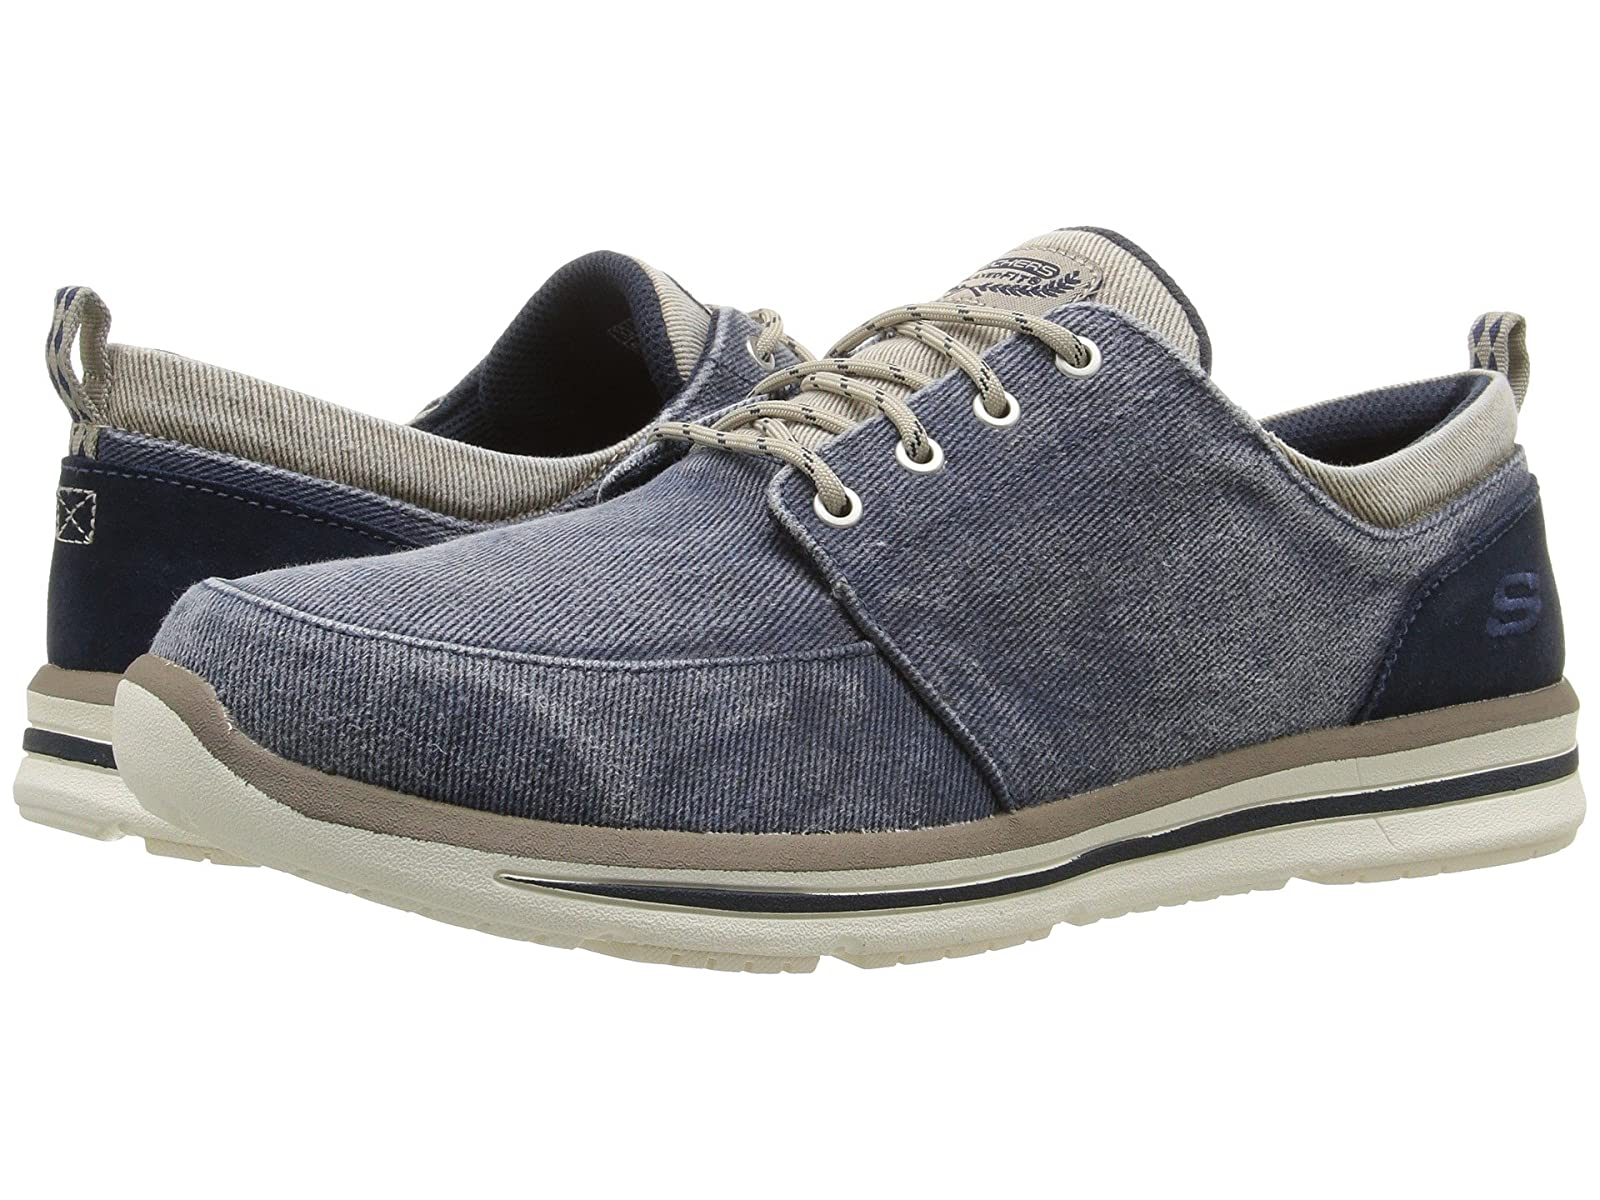 SKECHERS Relaxed Fit®: Doren - AlwenCheap and distinctive eye-catching shoes